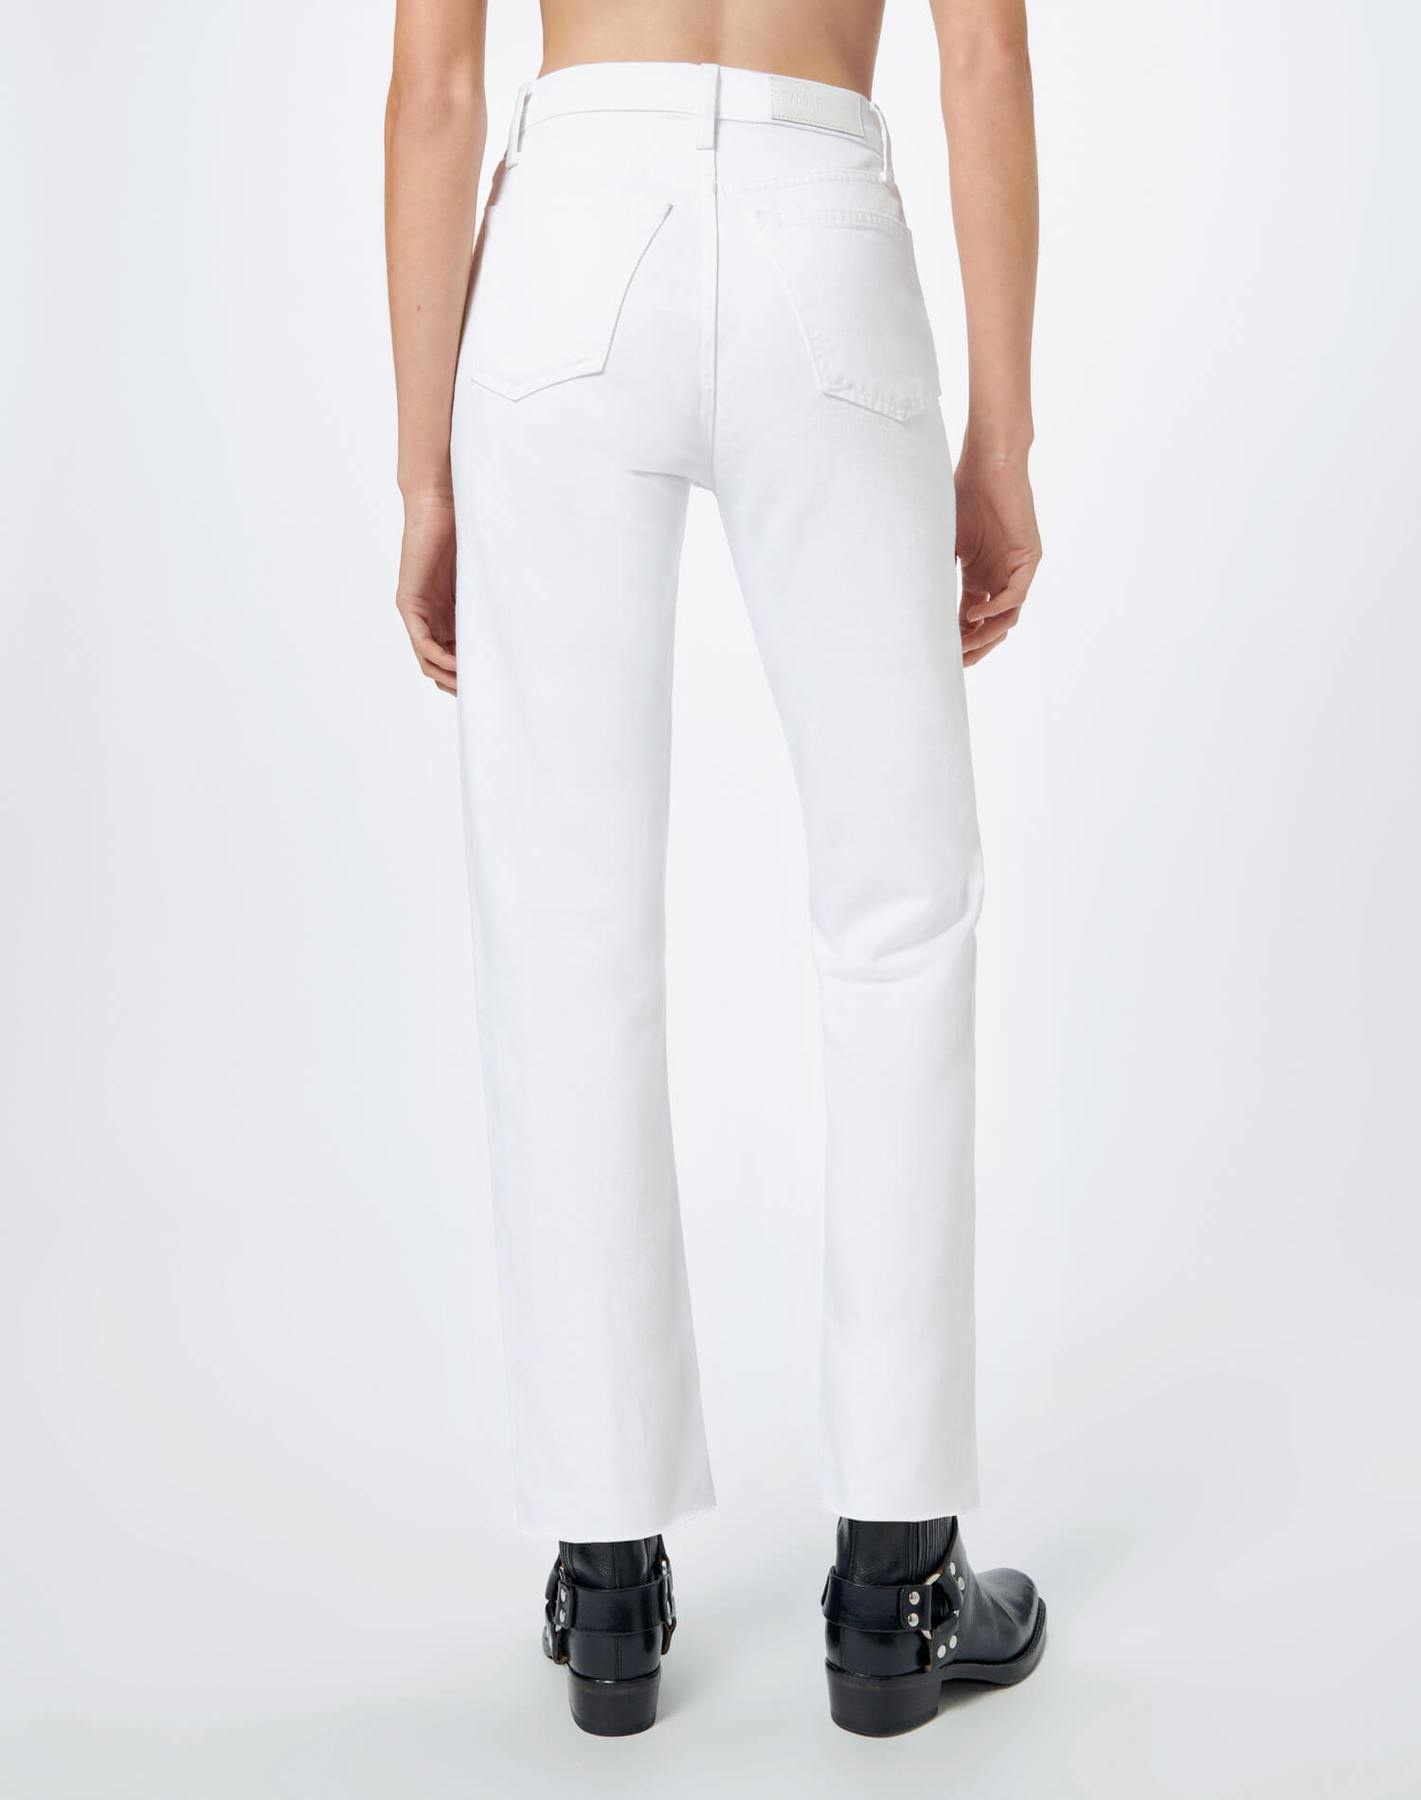 Stove Pipe Jeans White